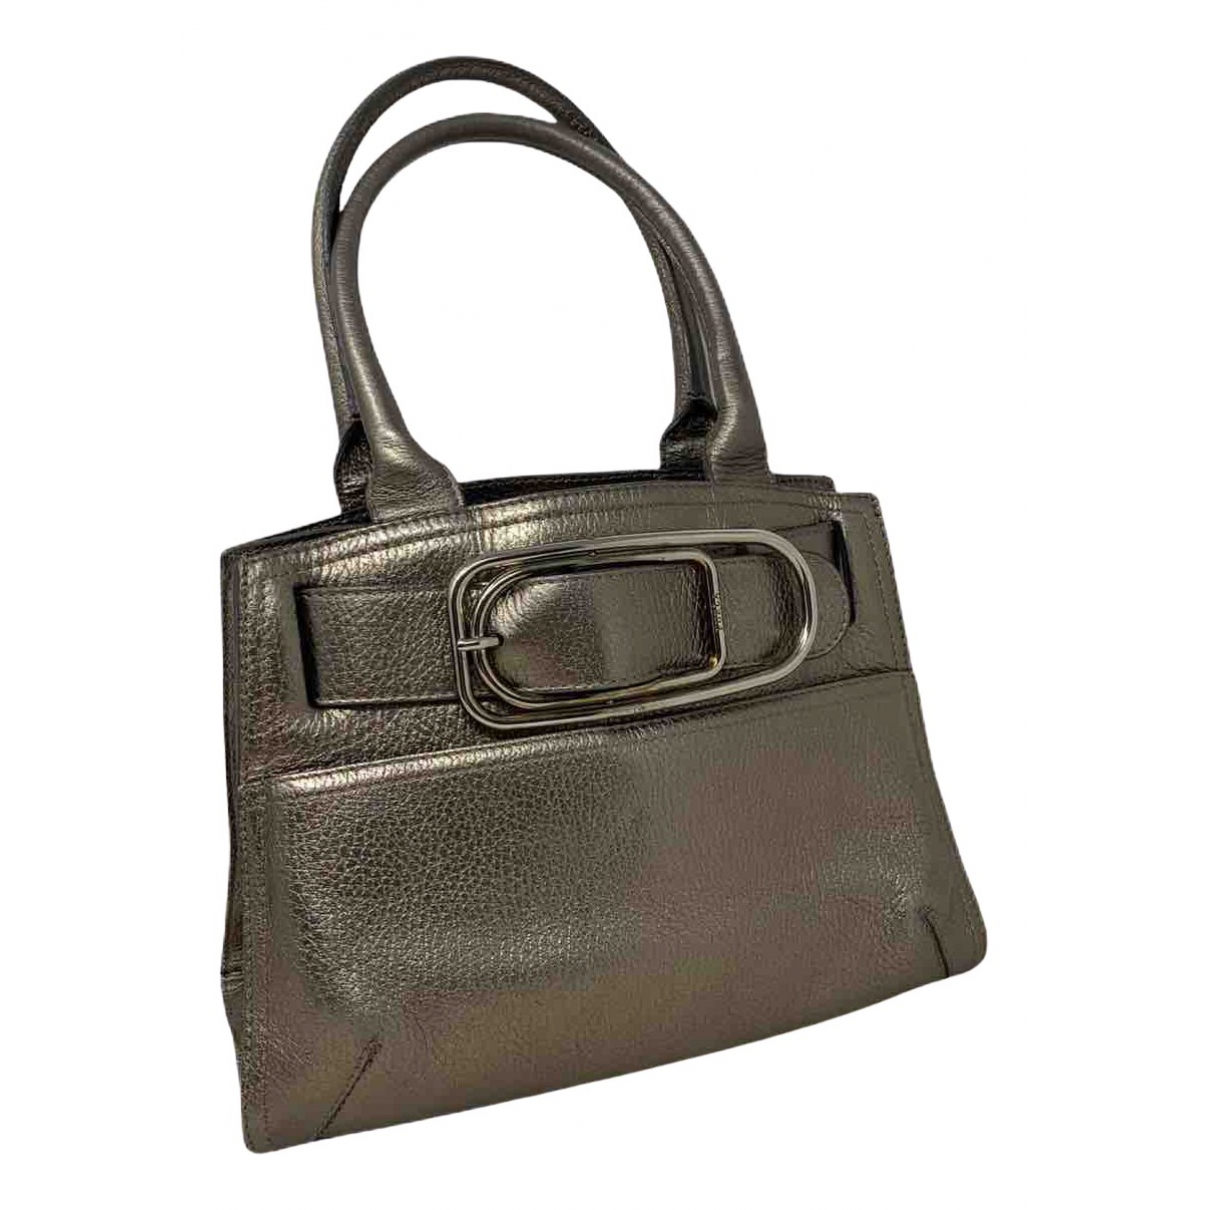 Furla N Leather handbag for Women N